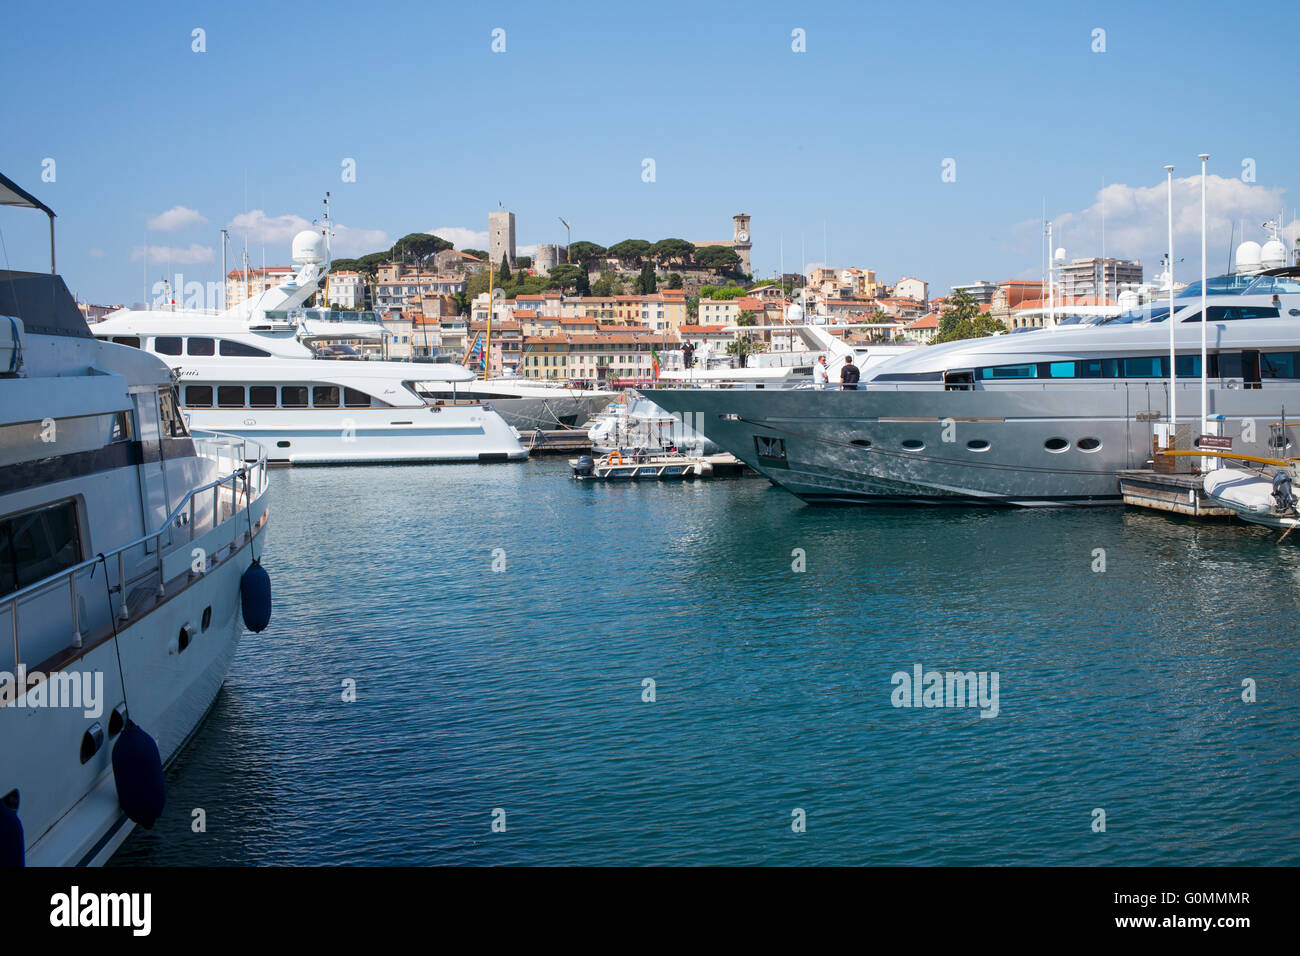 Luxury yachts moored at Cannes, France. The old town of Le Suquet is in the background. - Stock Image